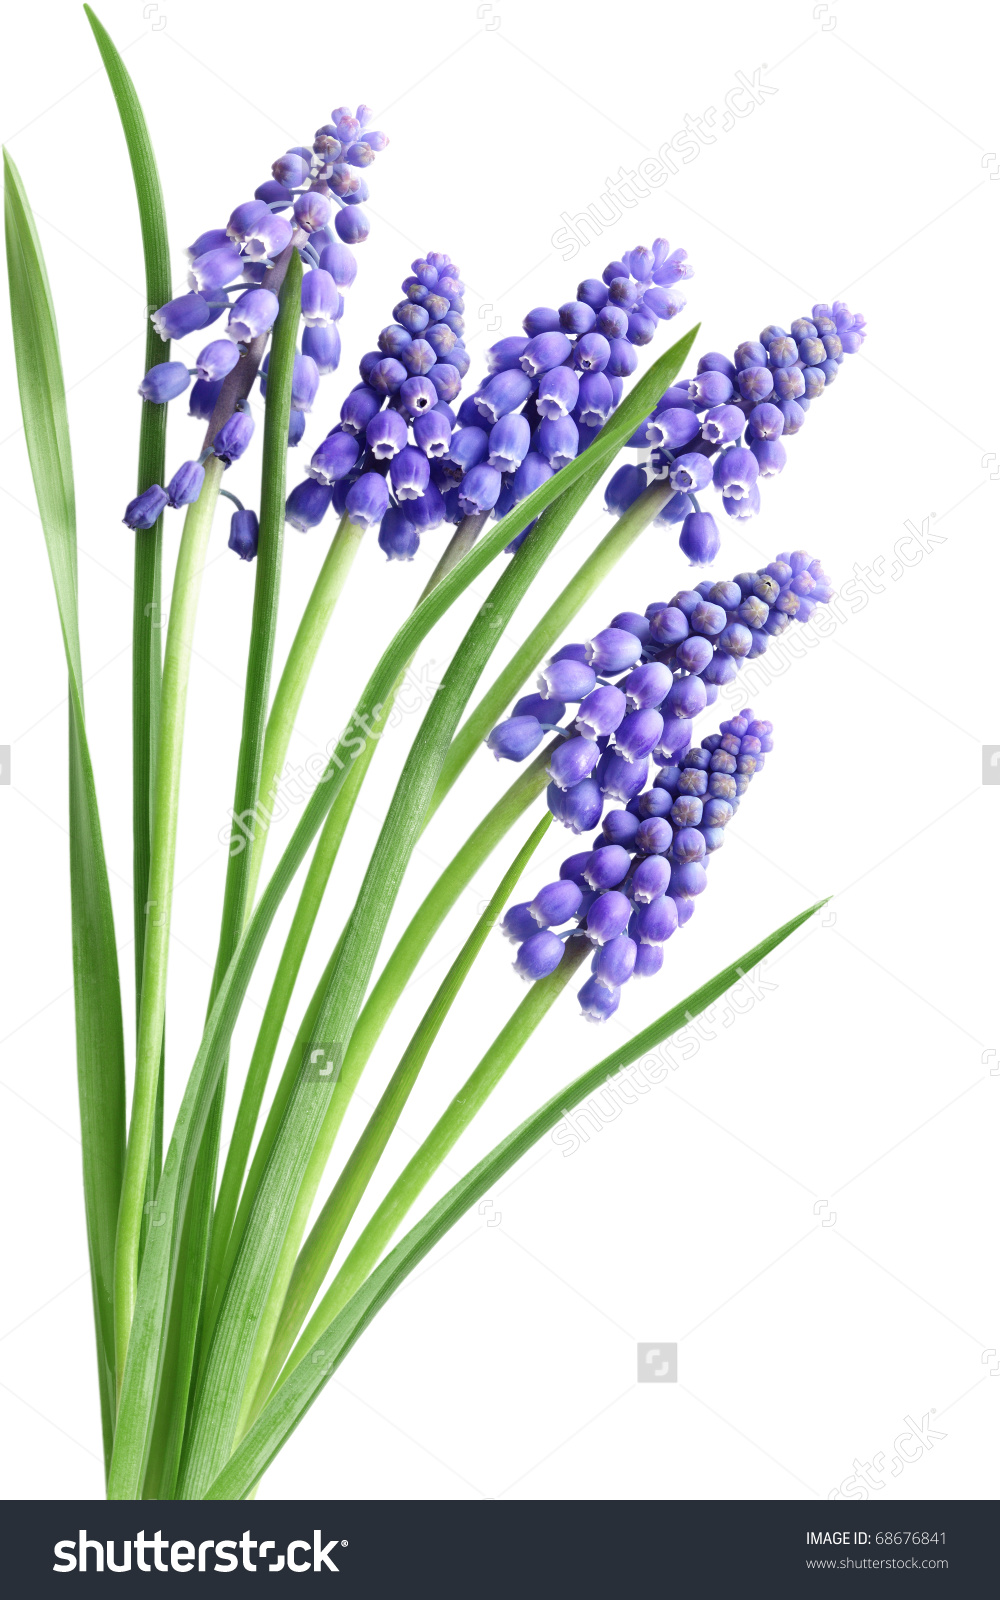 Grape Hyacinth clipart #8, Download drawings